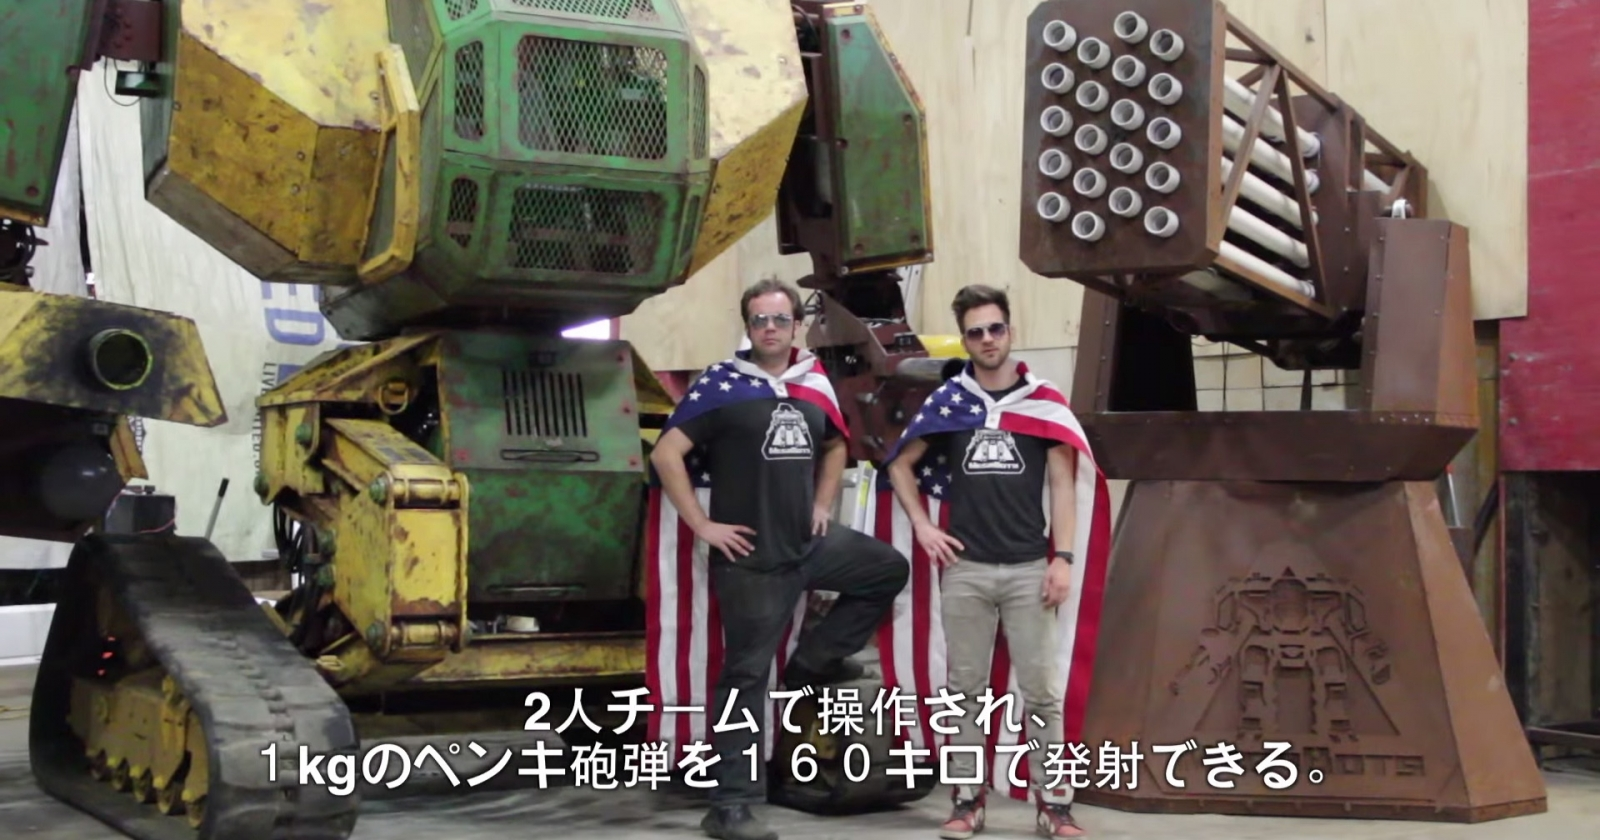 MegaBots Mark 2 giant robot mecha suit